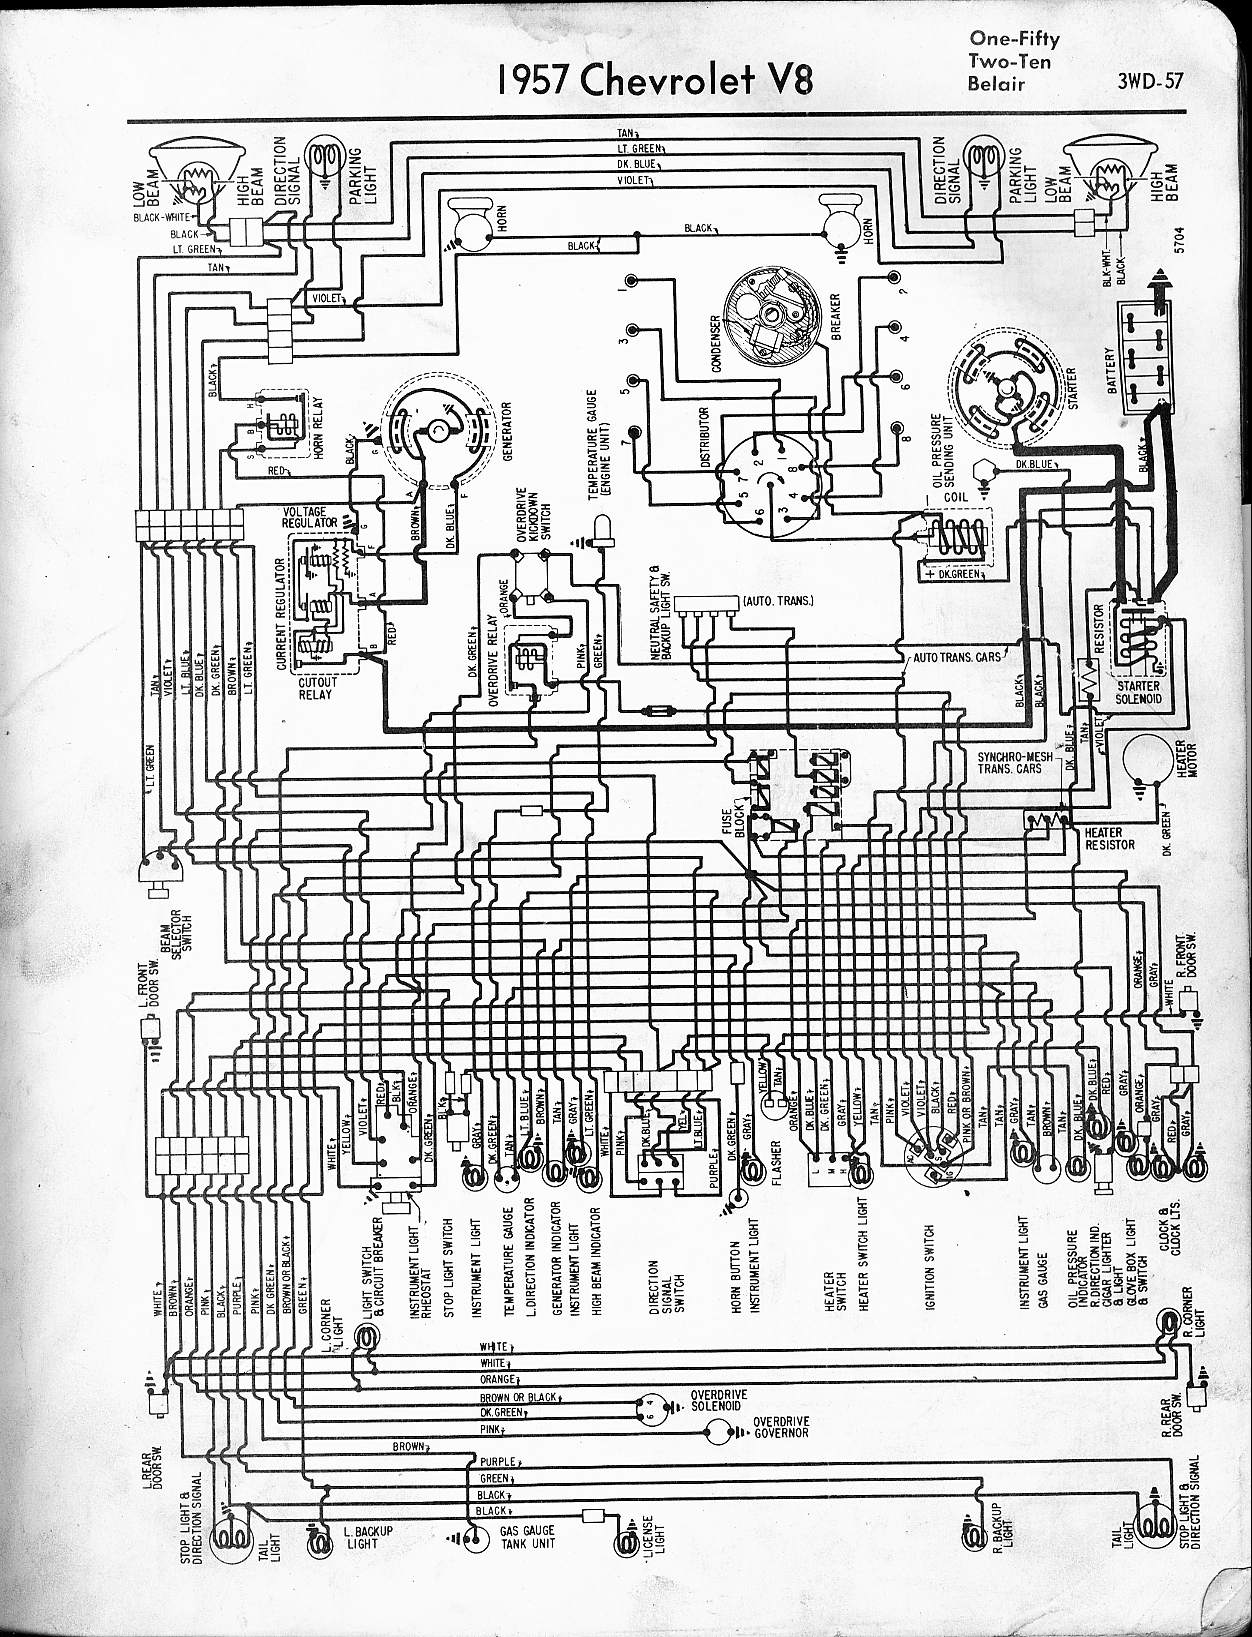 68 Chevy Tail Light Wiring Harness Diagram Will Be A Thing 1968 C10 55 Content Resource Of Rh Uberstuff Co